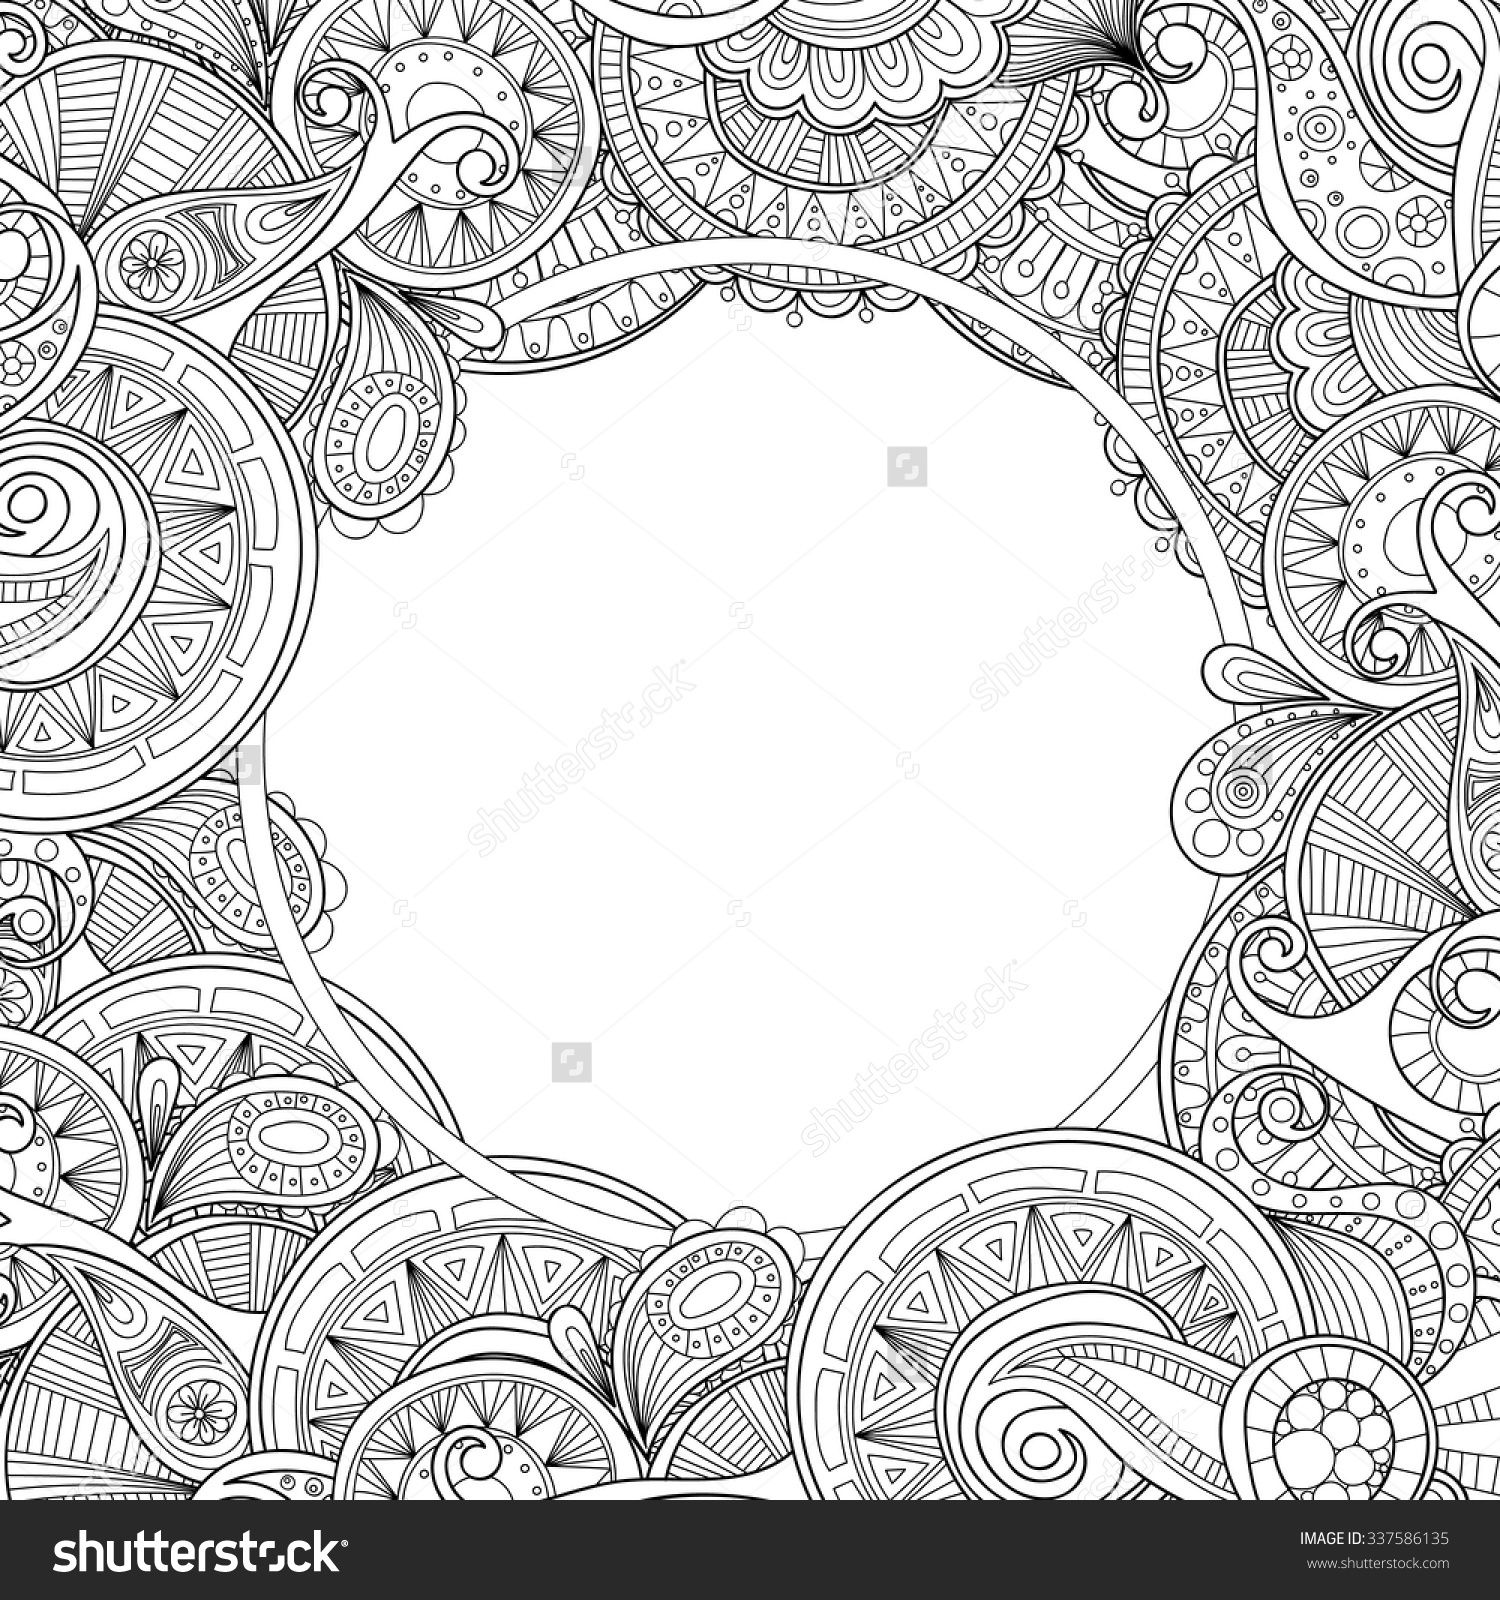 Stock vector abstract hand drawn zentangle style frame doodle art stock vector abstract hand drawn zentangle style frame pronofoot35fo Choice Image